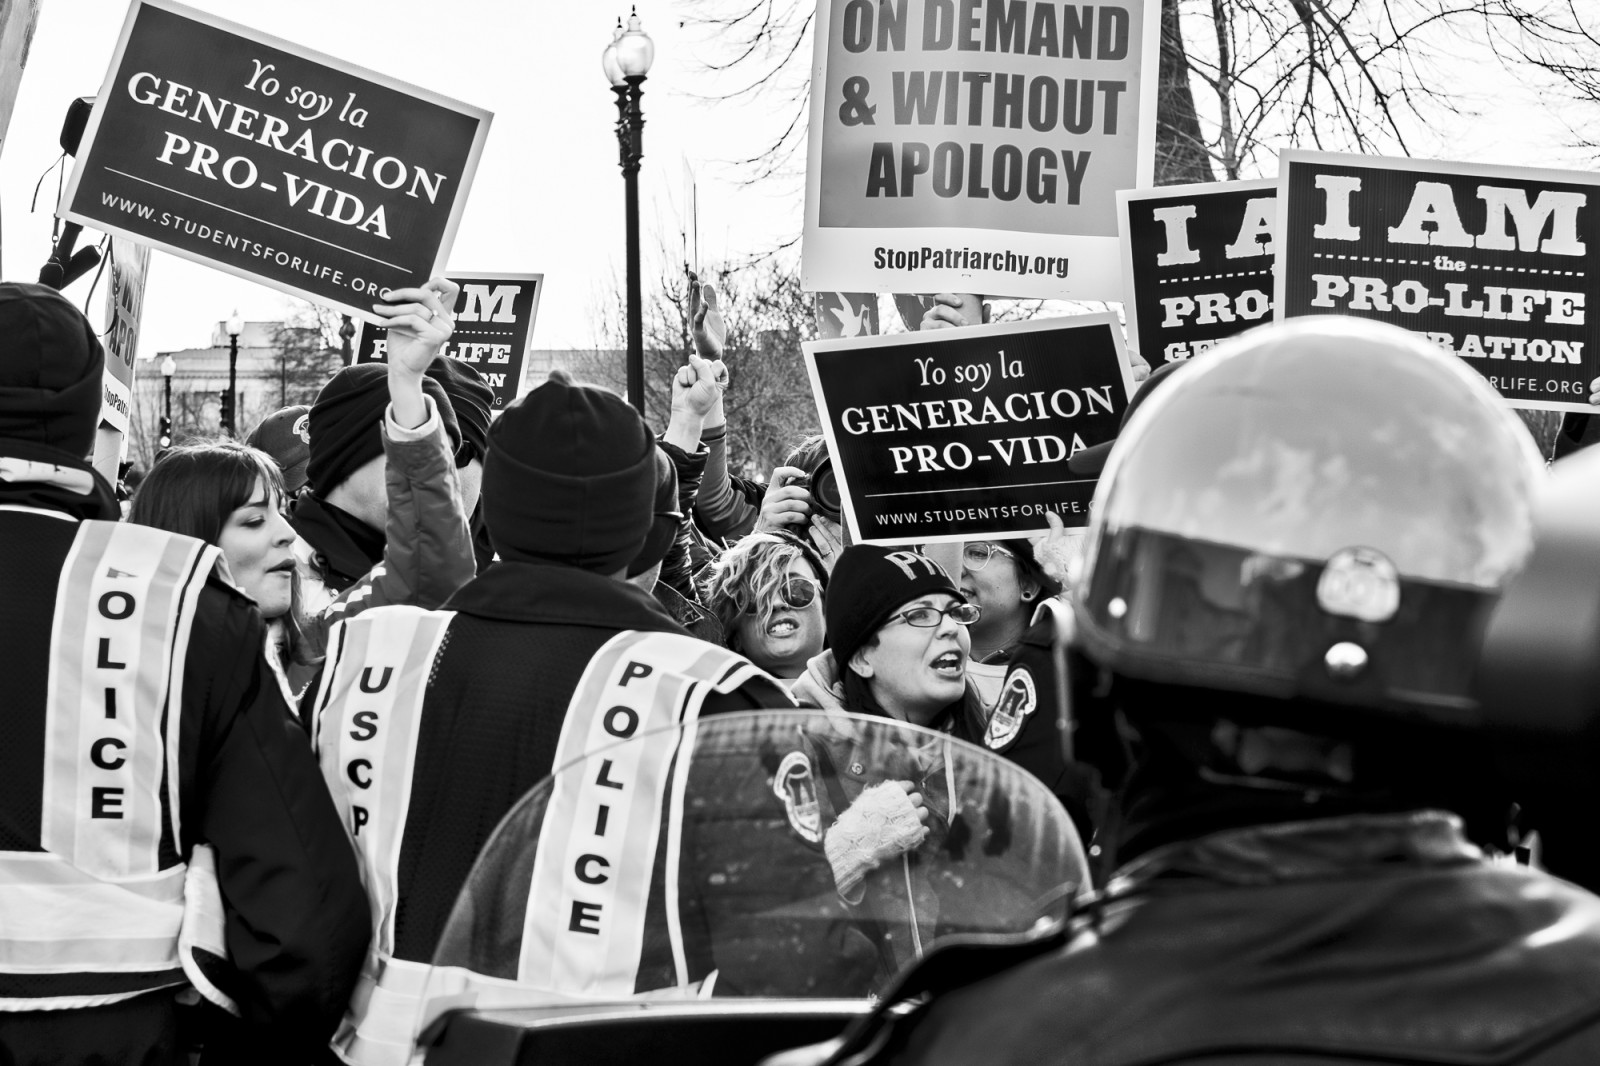 Pro-choice activists block the street in front of the Supreme Court as Anti-abortion activists take part in the 42nd March for Life in Washington, DC on January 22, 2015. Activists from across the nation participated in the annual pro-life rally protesting abortion and the 1973 Roe v. Wade Supreme Court decision legalizing abortion. UPI/Pete Marovich